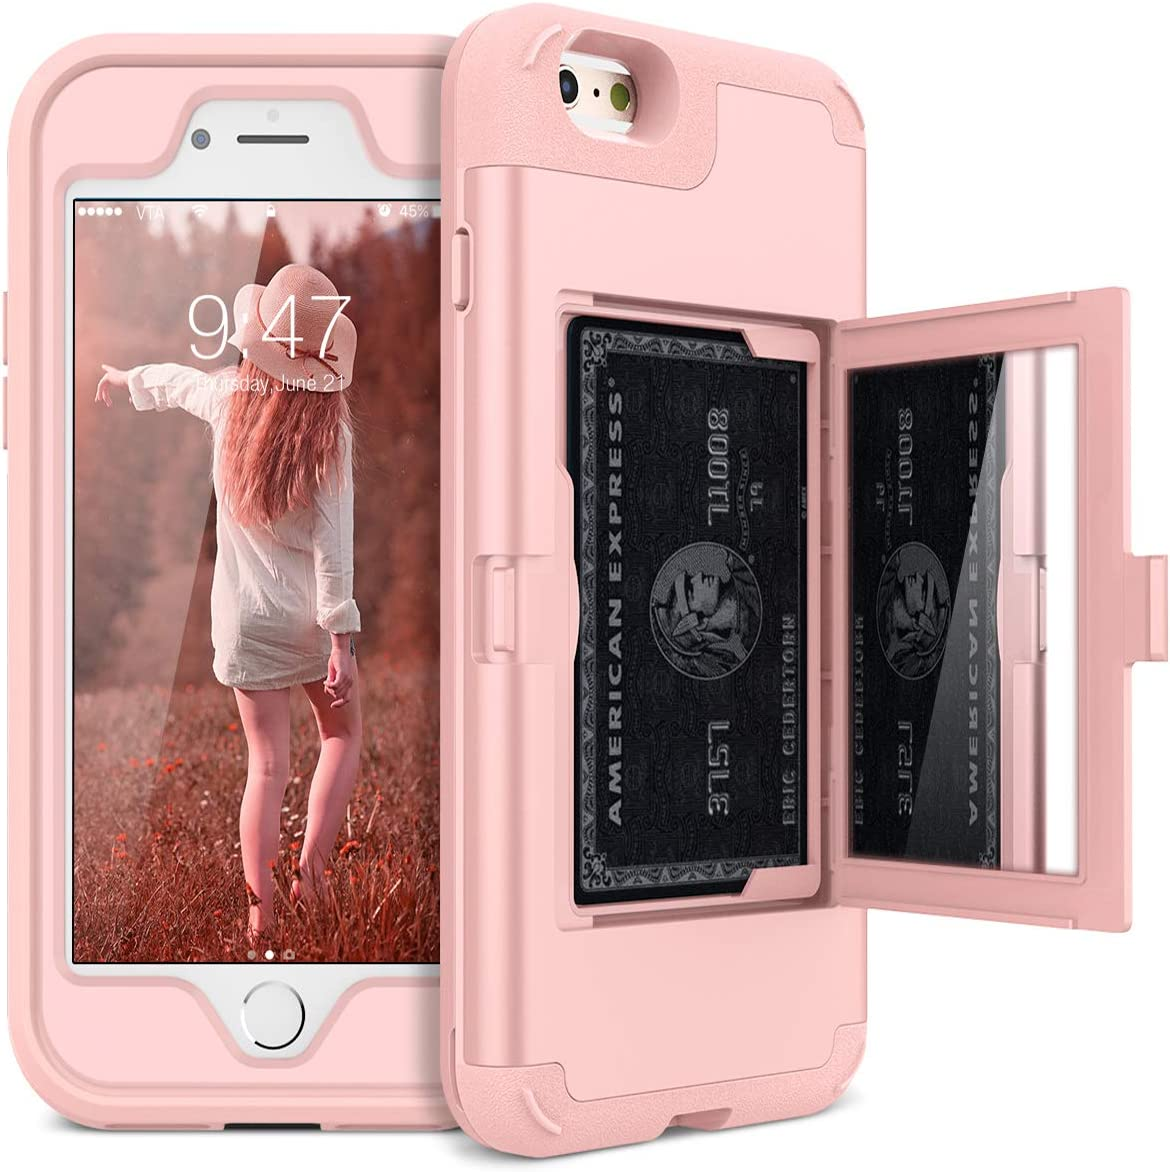 WeLoveCase iPhone 6 Plus / 6s Plus Wallet Case Defender Wallet Case with Hidden Back Mirror and Card Holder Heavy Duty Protection Shockproof Armor Protective Case for iPhone 6S Plus - Rose Gold